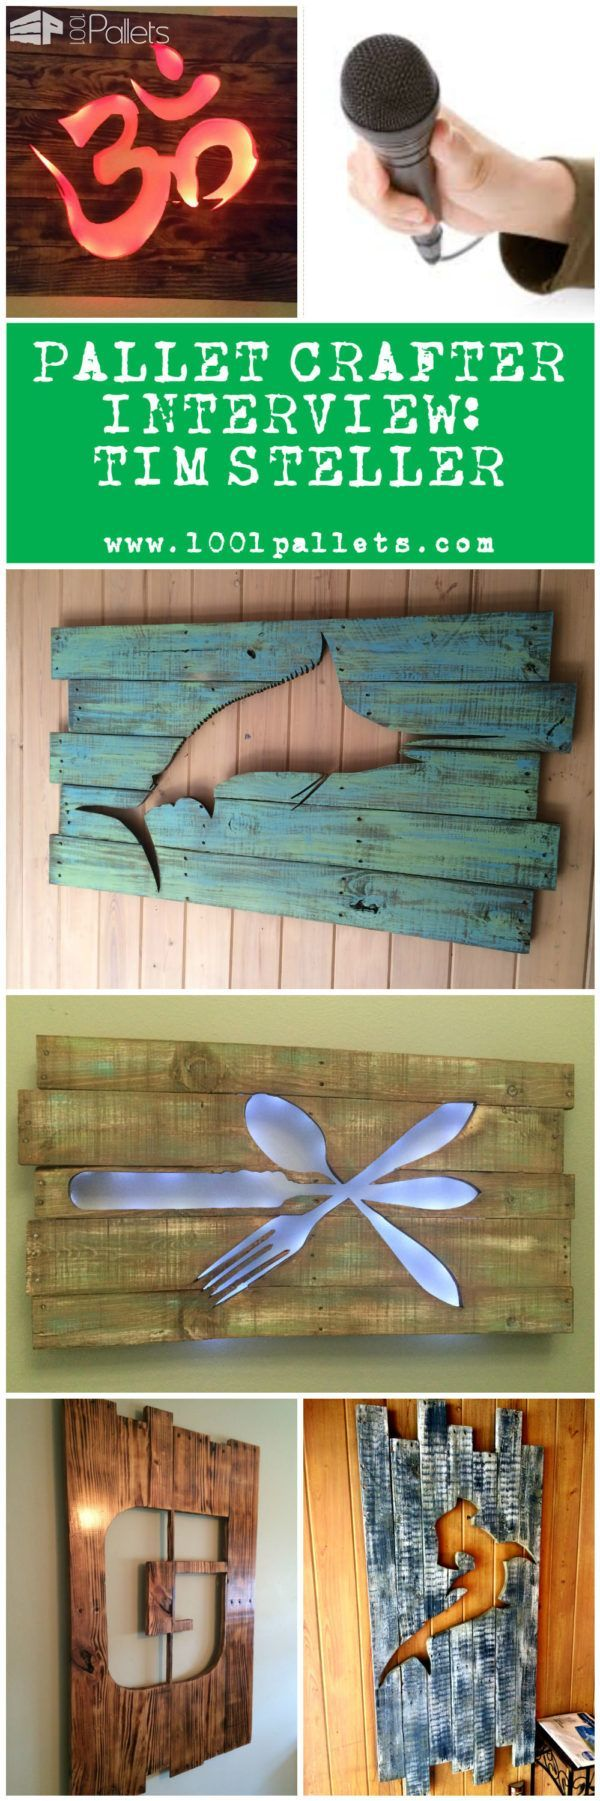 #Crafter, #Interview, #RecyclingWoodPallets Today, we had the chance to ask some questions to Tim Steller, Crafterfrom Sarasota in Florida (USA)who specializes in making all kind of beautiful Artworks mainly from recycled wooden pallets; you can follow the work of Tim on its website: